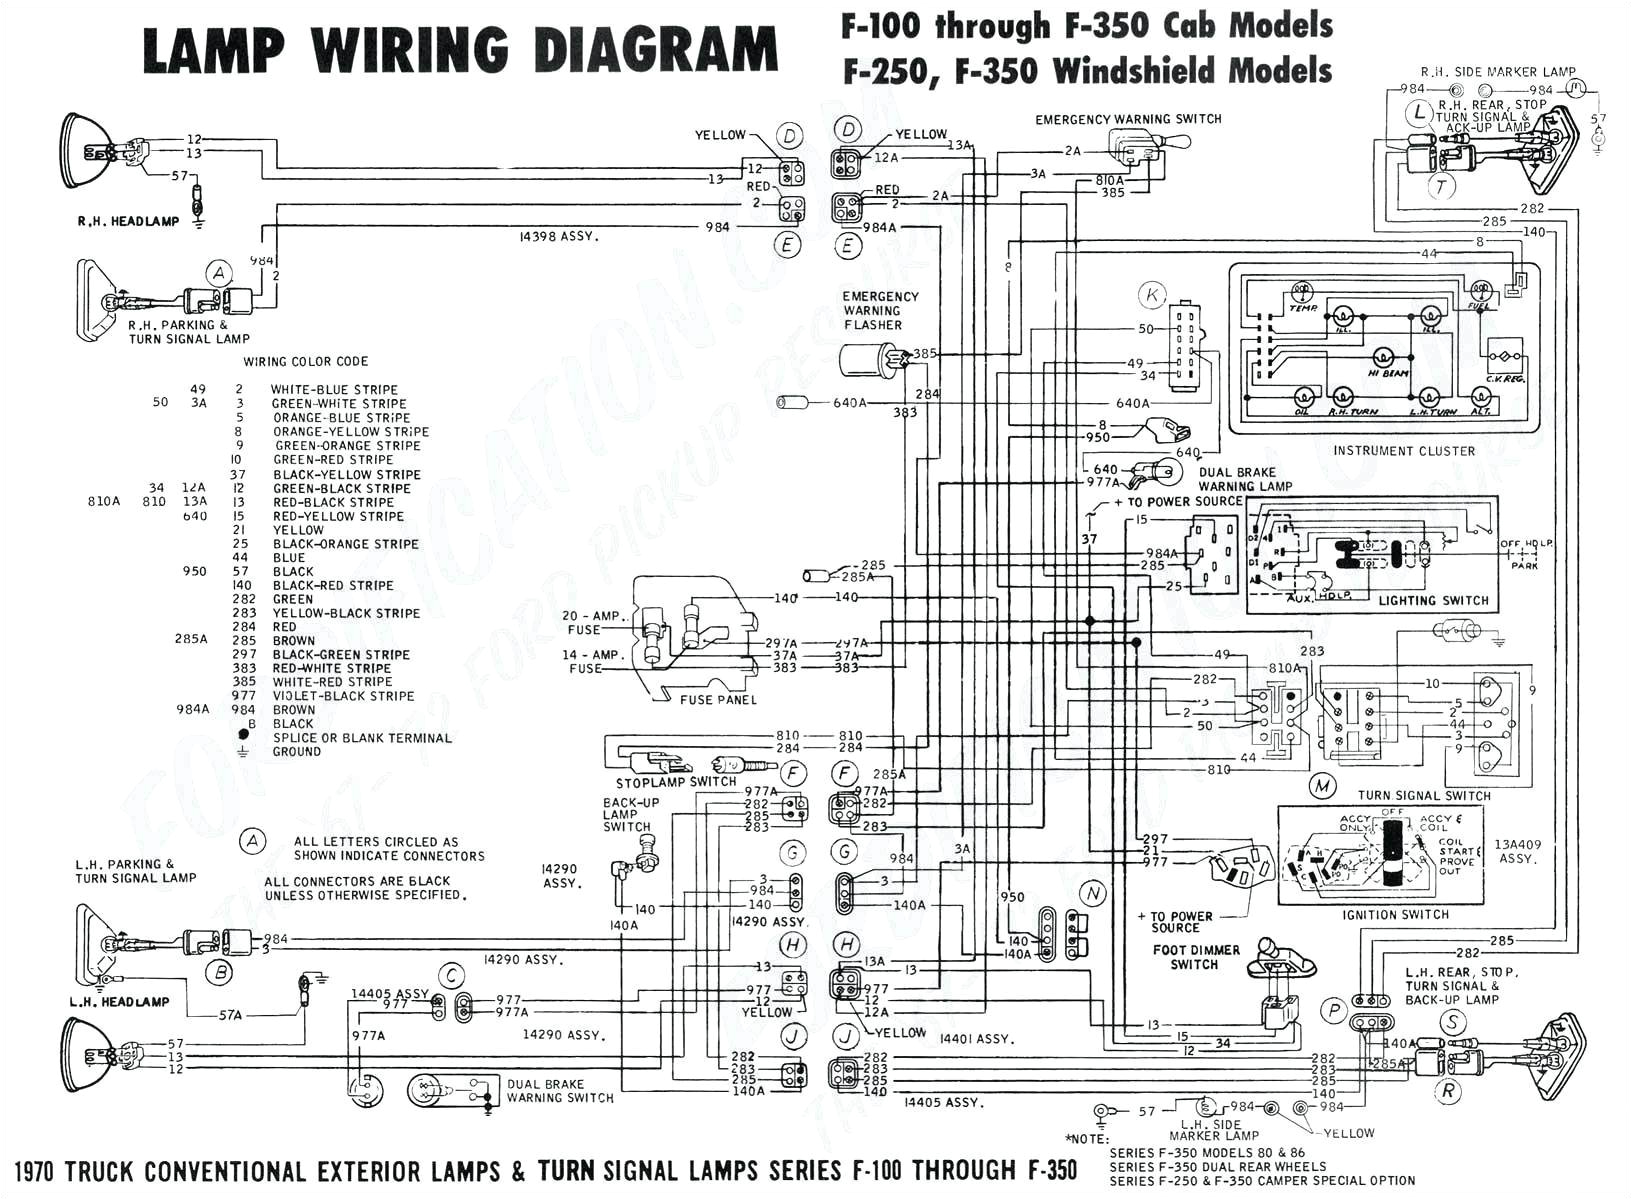 Wire Up Light Switch Diagram Wiring Diagrams Myrons Mopeds Blog Wiring Diagram